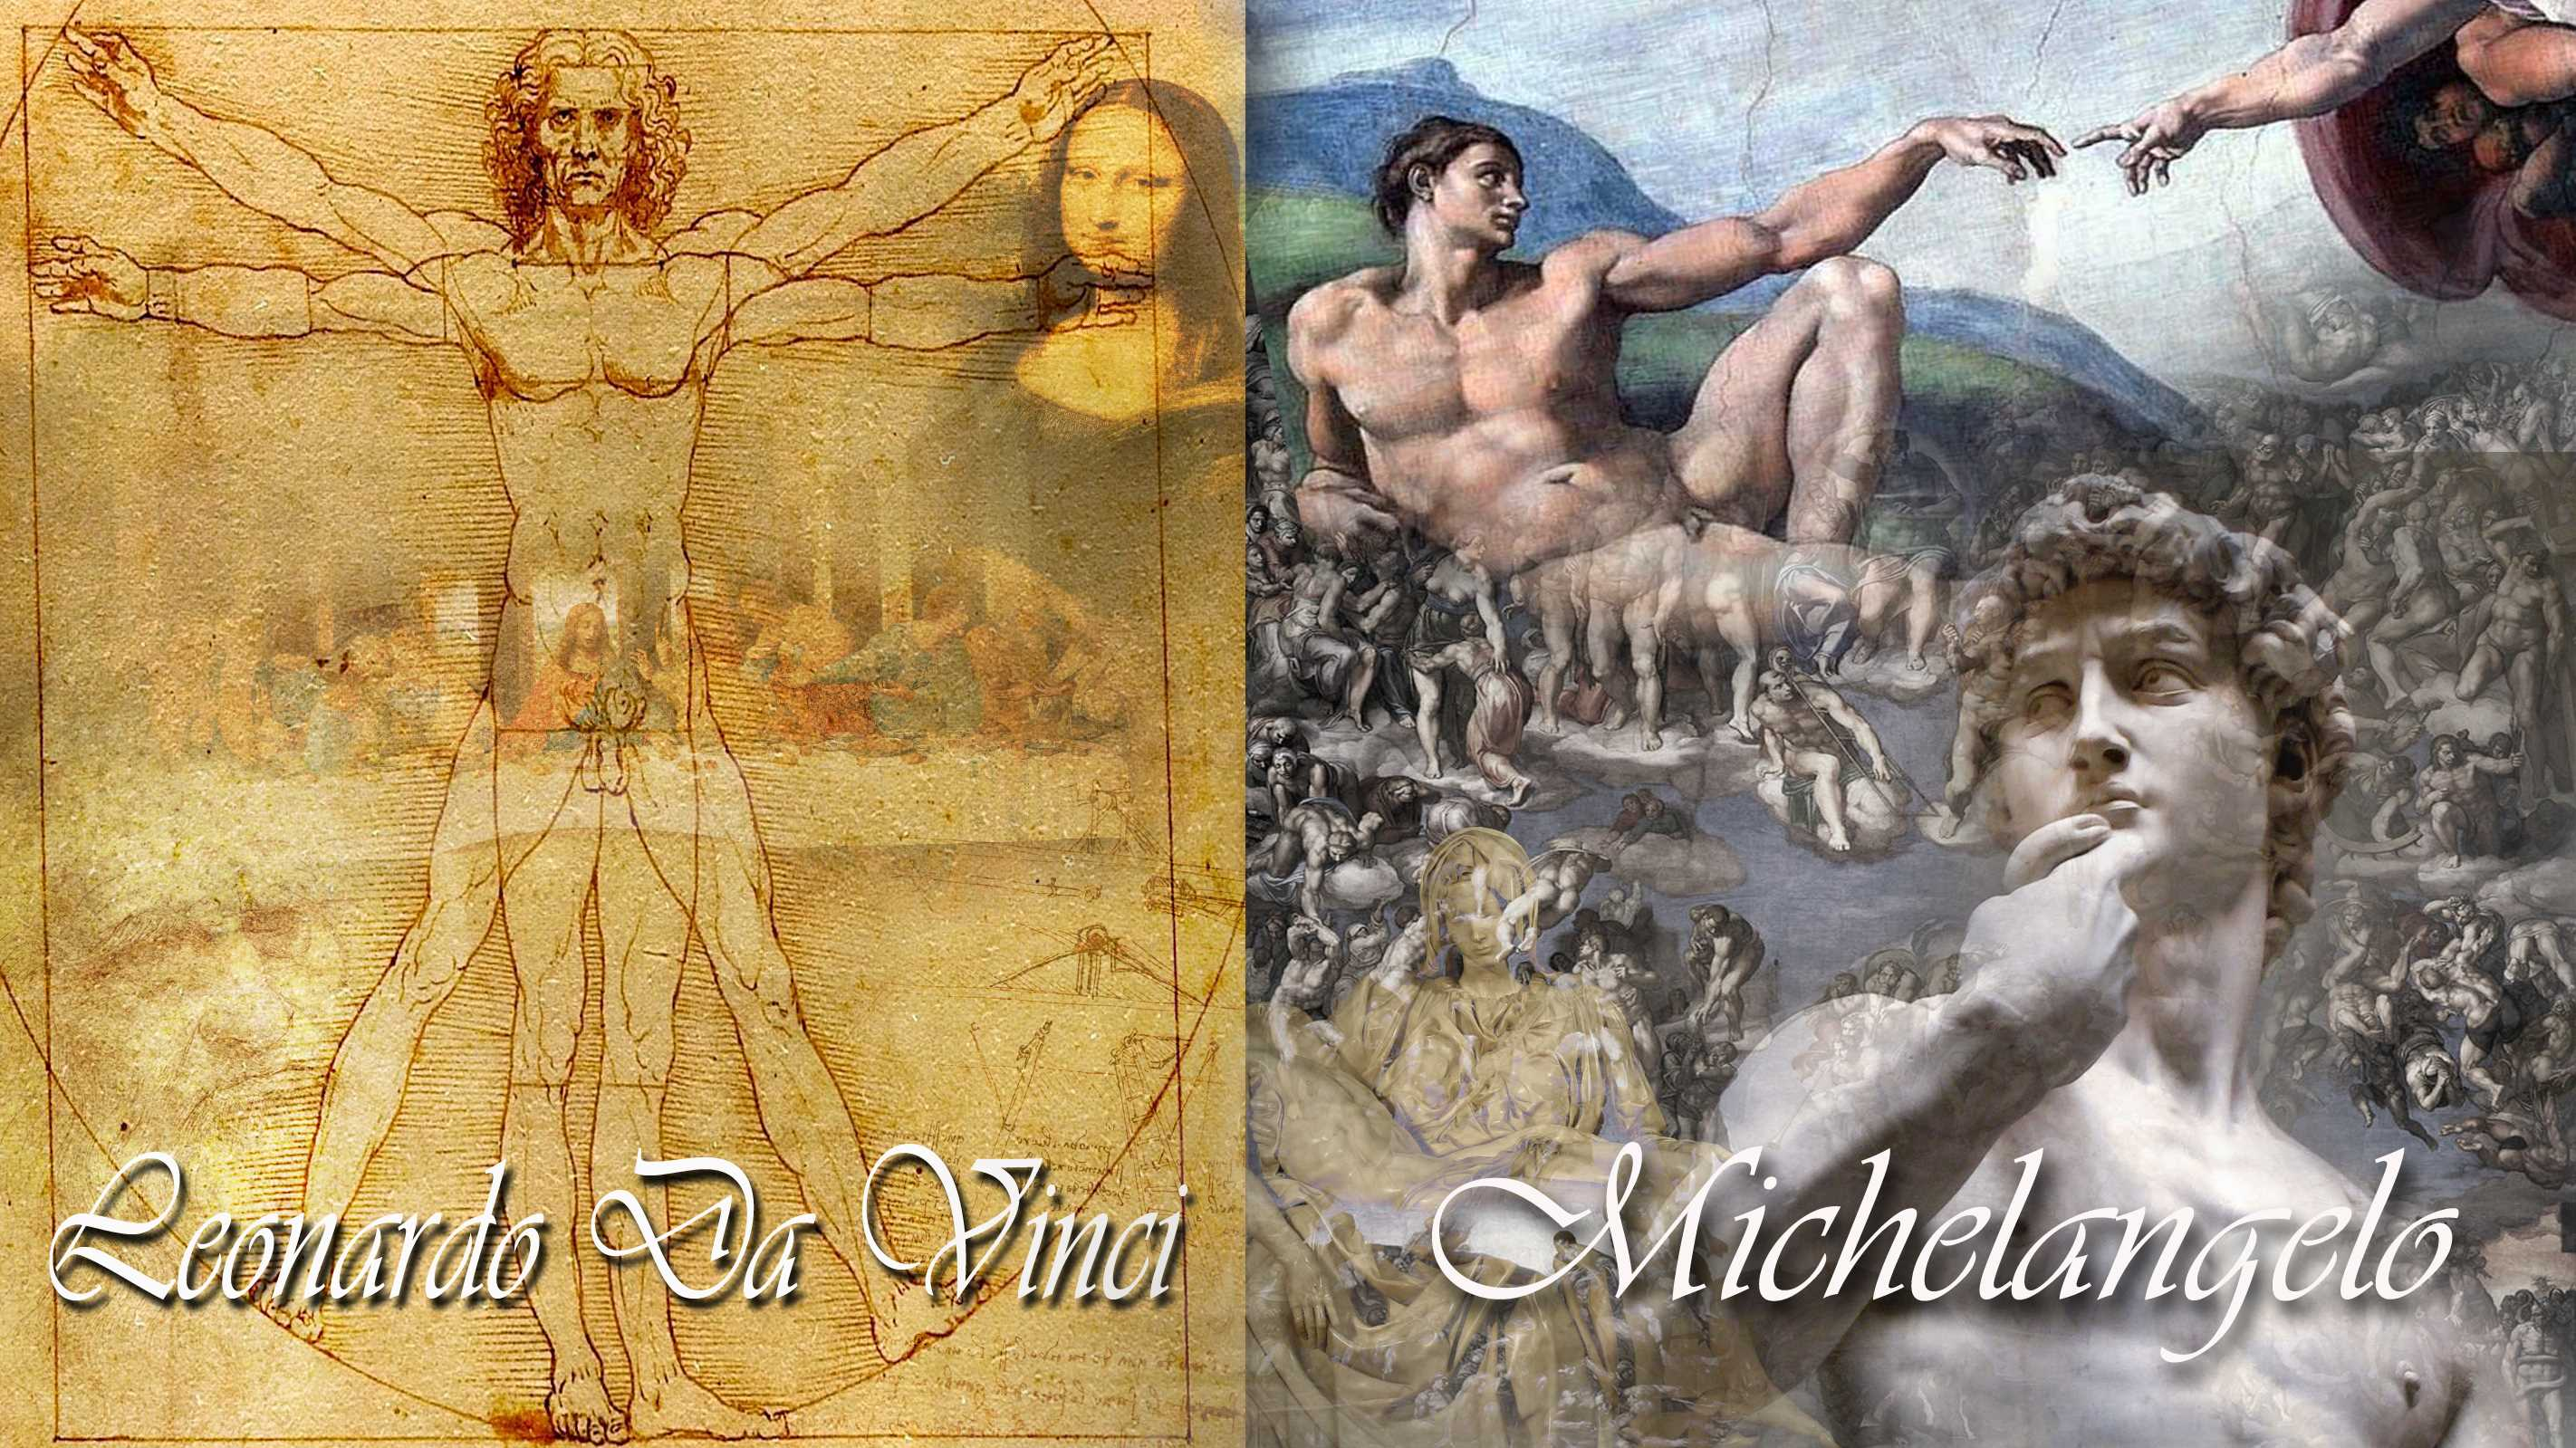 research essay on leonardo da vinci Essay on the biography of leonardo da vinci leonardo da vinci is one of the greatest and most ingenious men that history has produced da vinci, born on april 15.